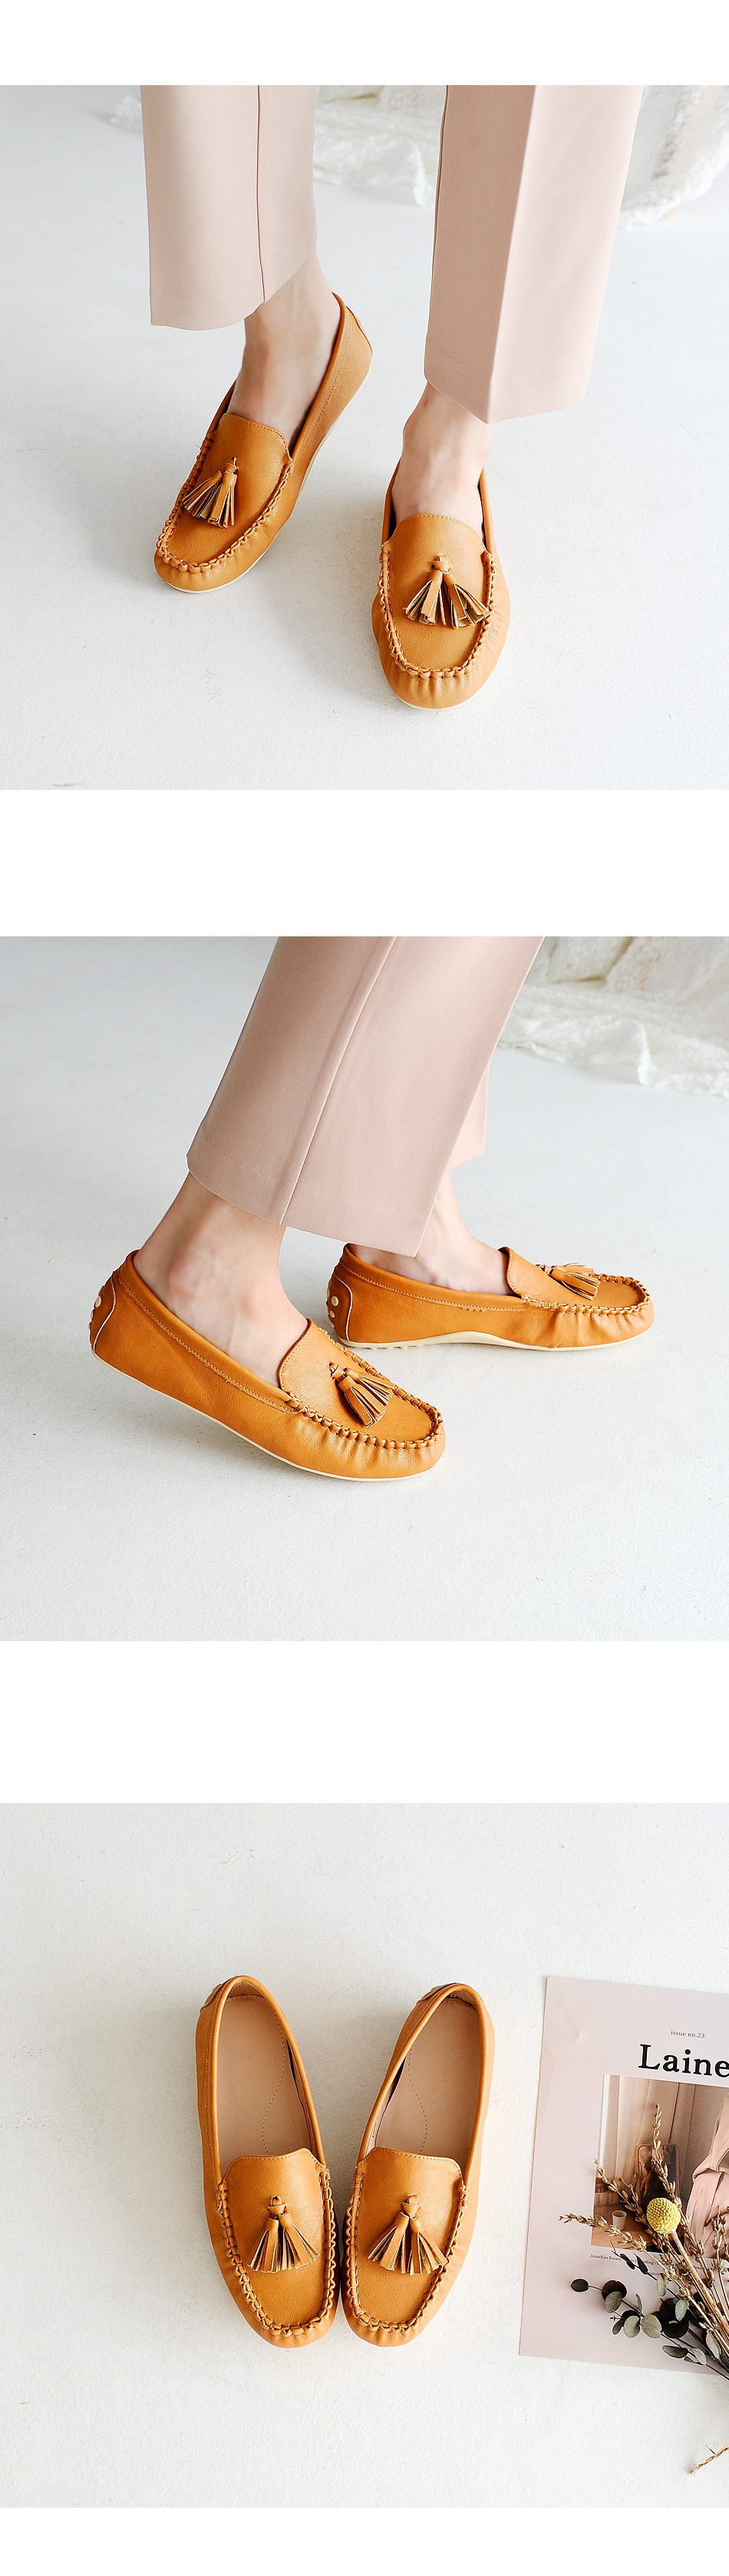 Taper Height Loafers 3cm